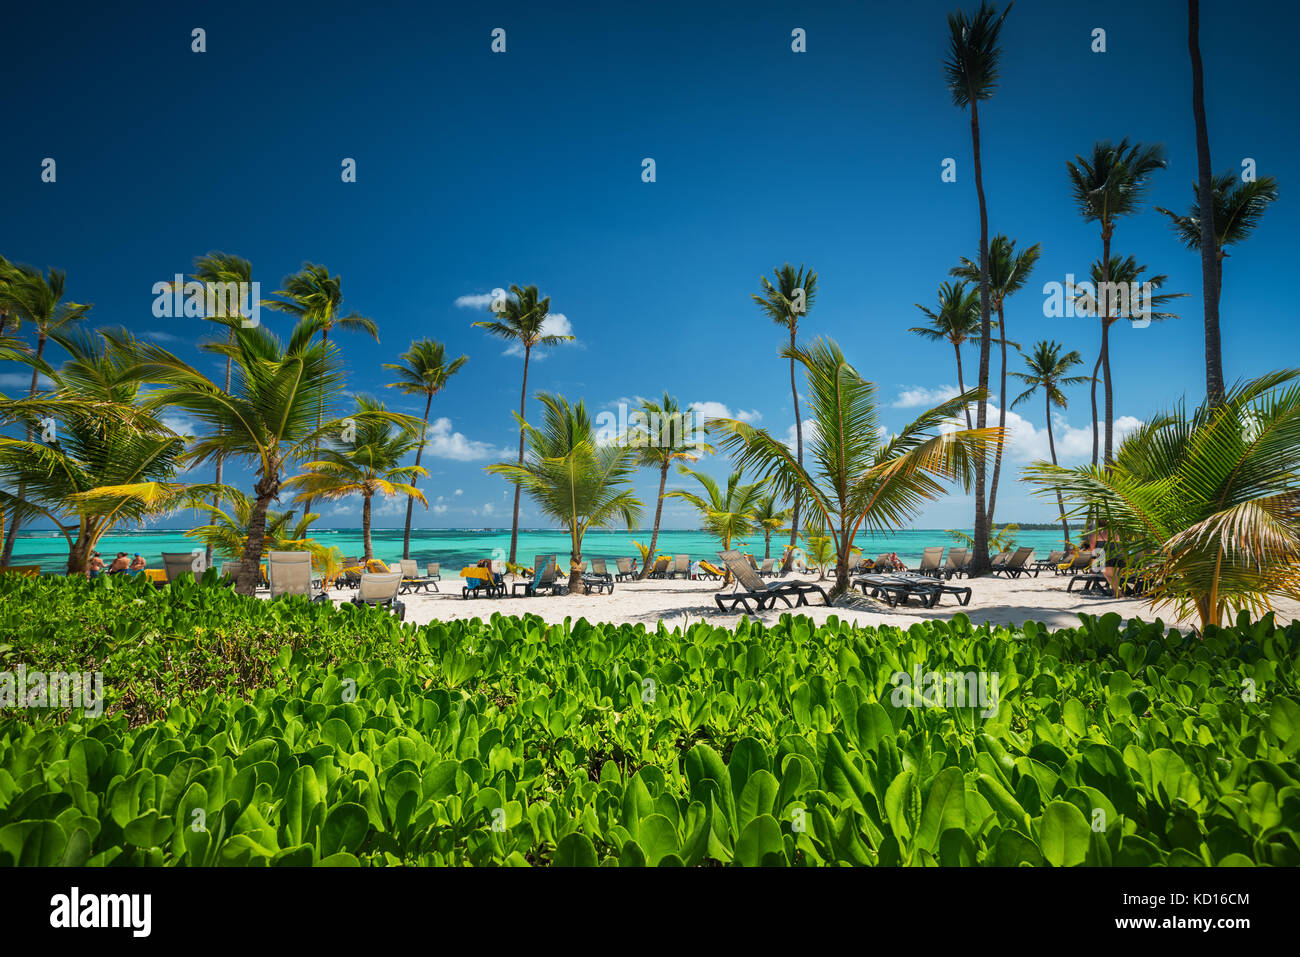 Palm tree on the tropical beach - Stock Image